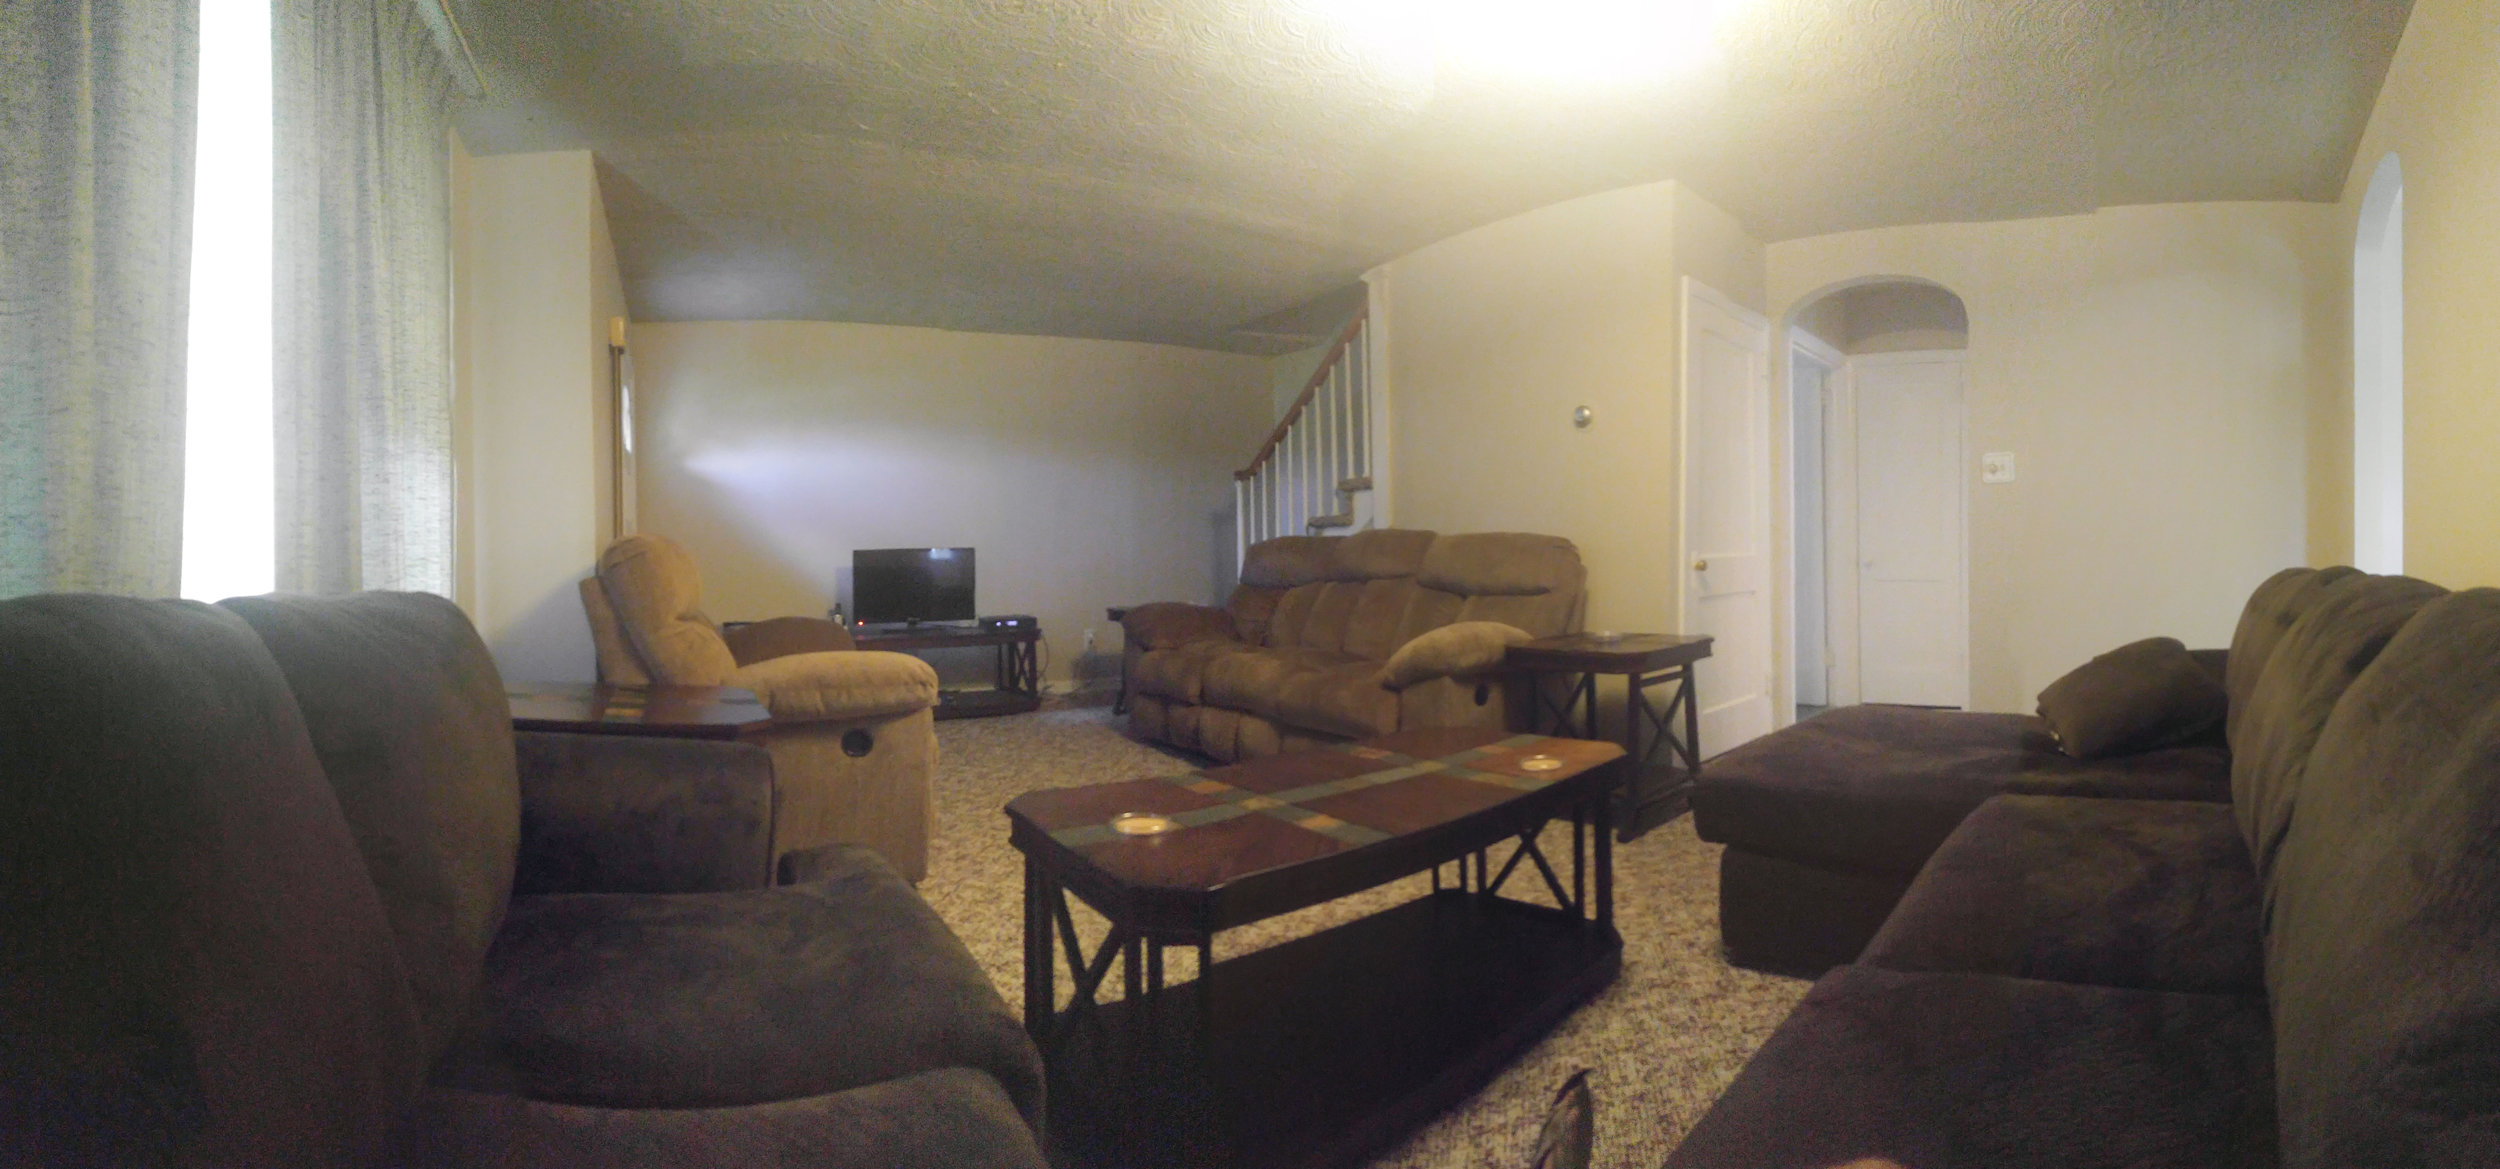 Our living room is furnished with contemporary furniture -